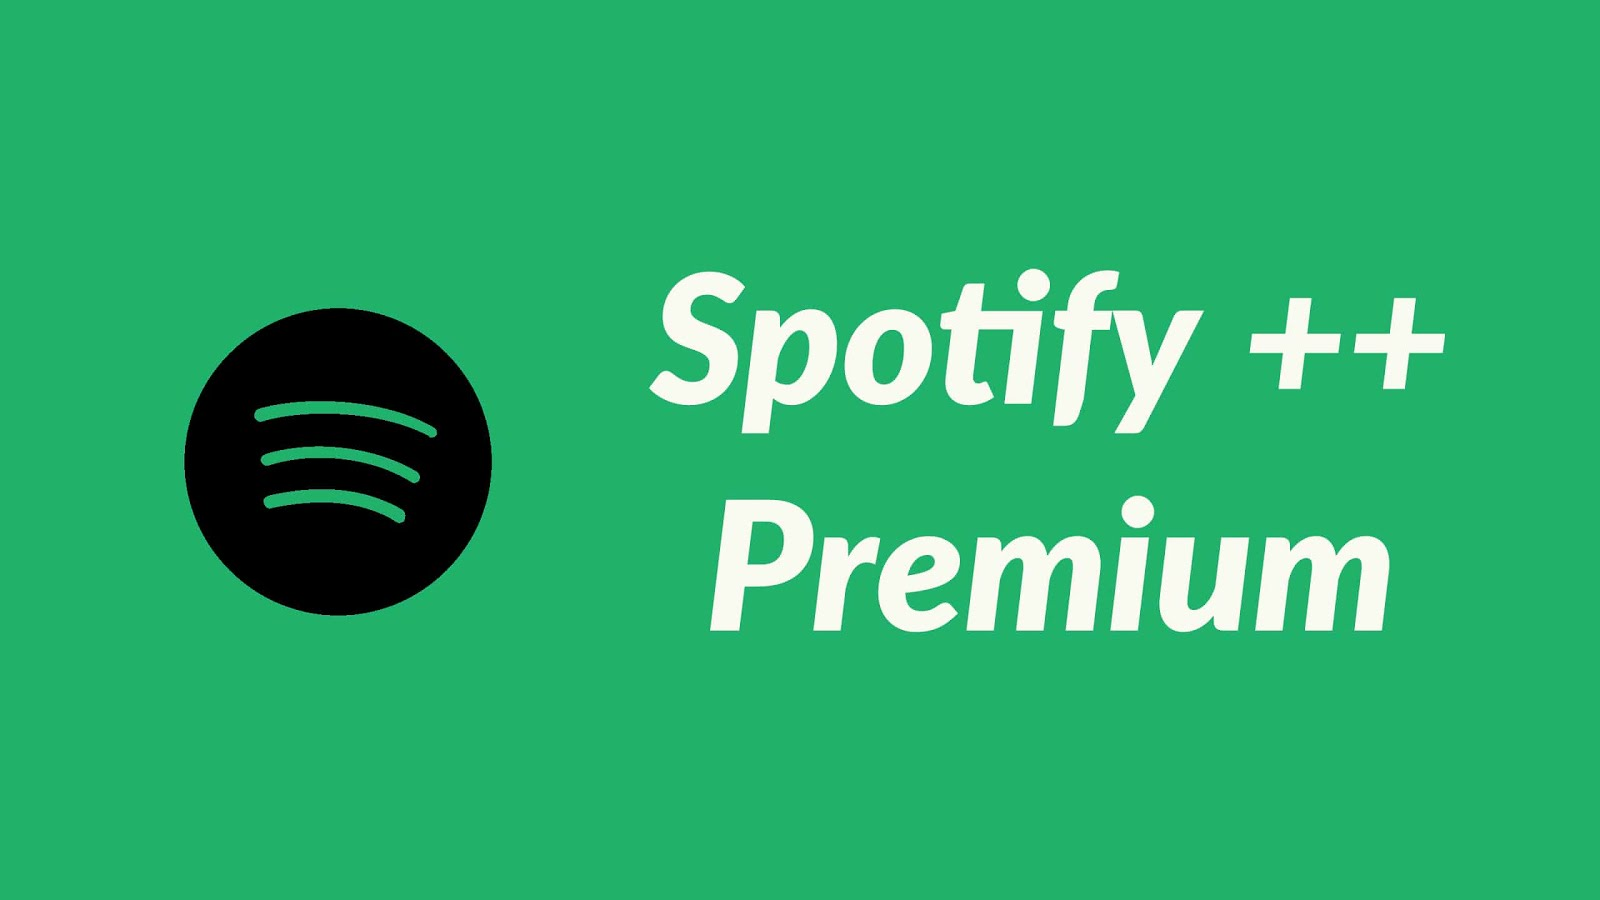 spotify++ premium on ios 12